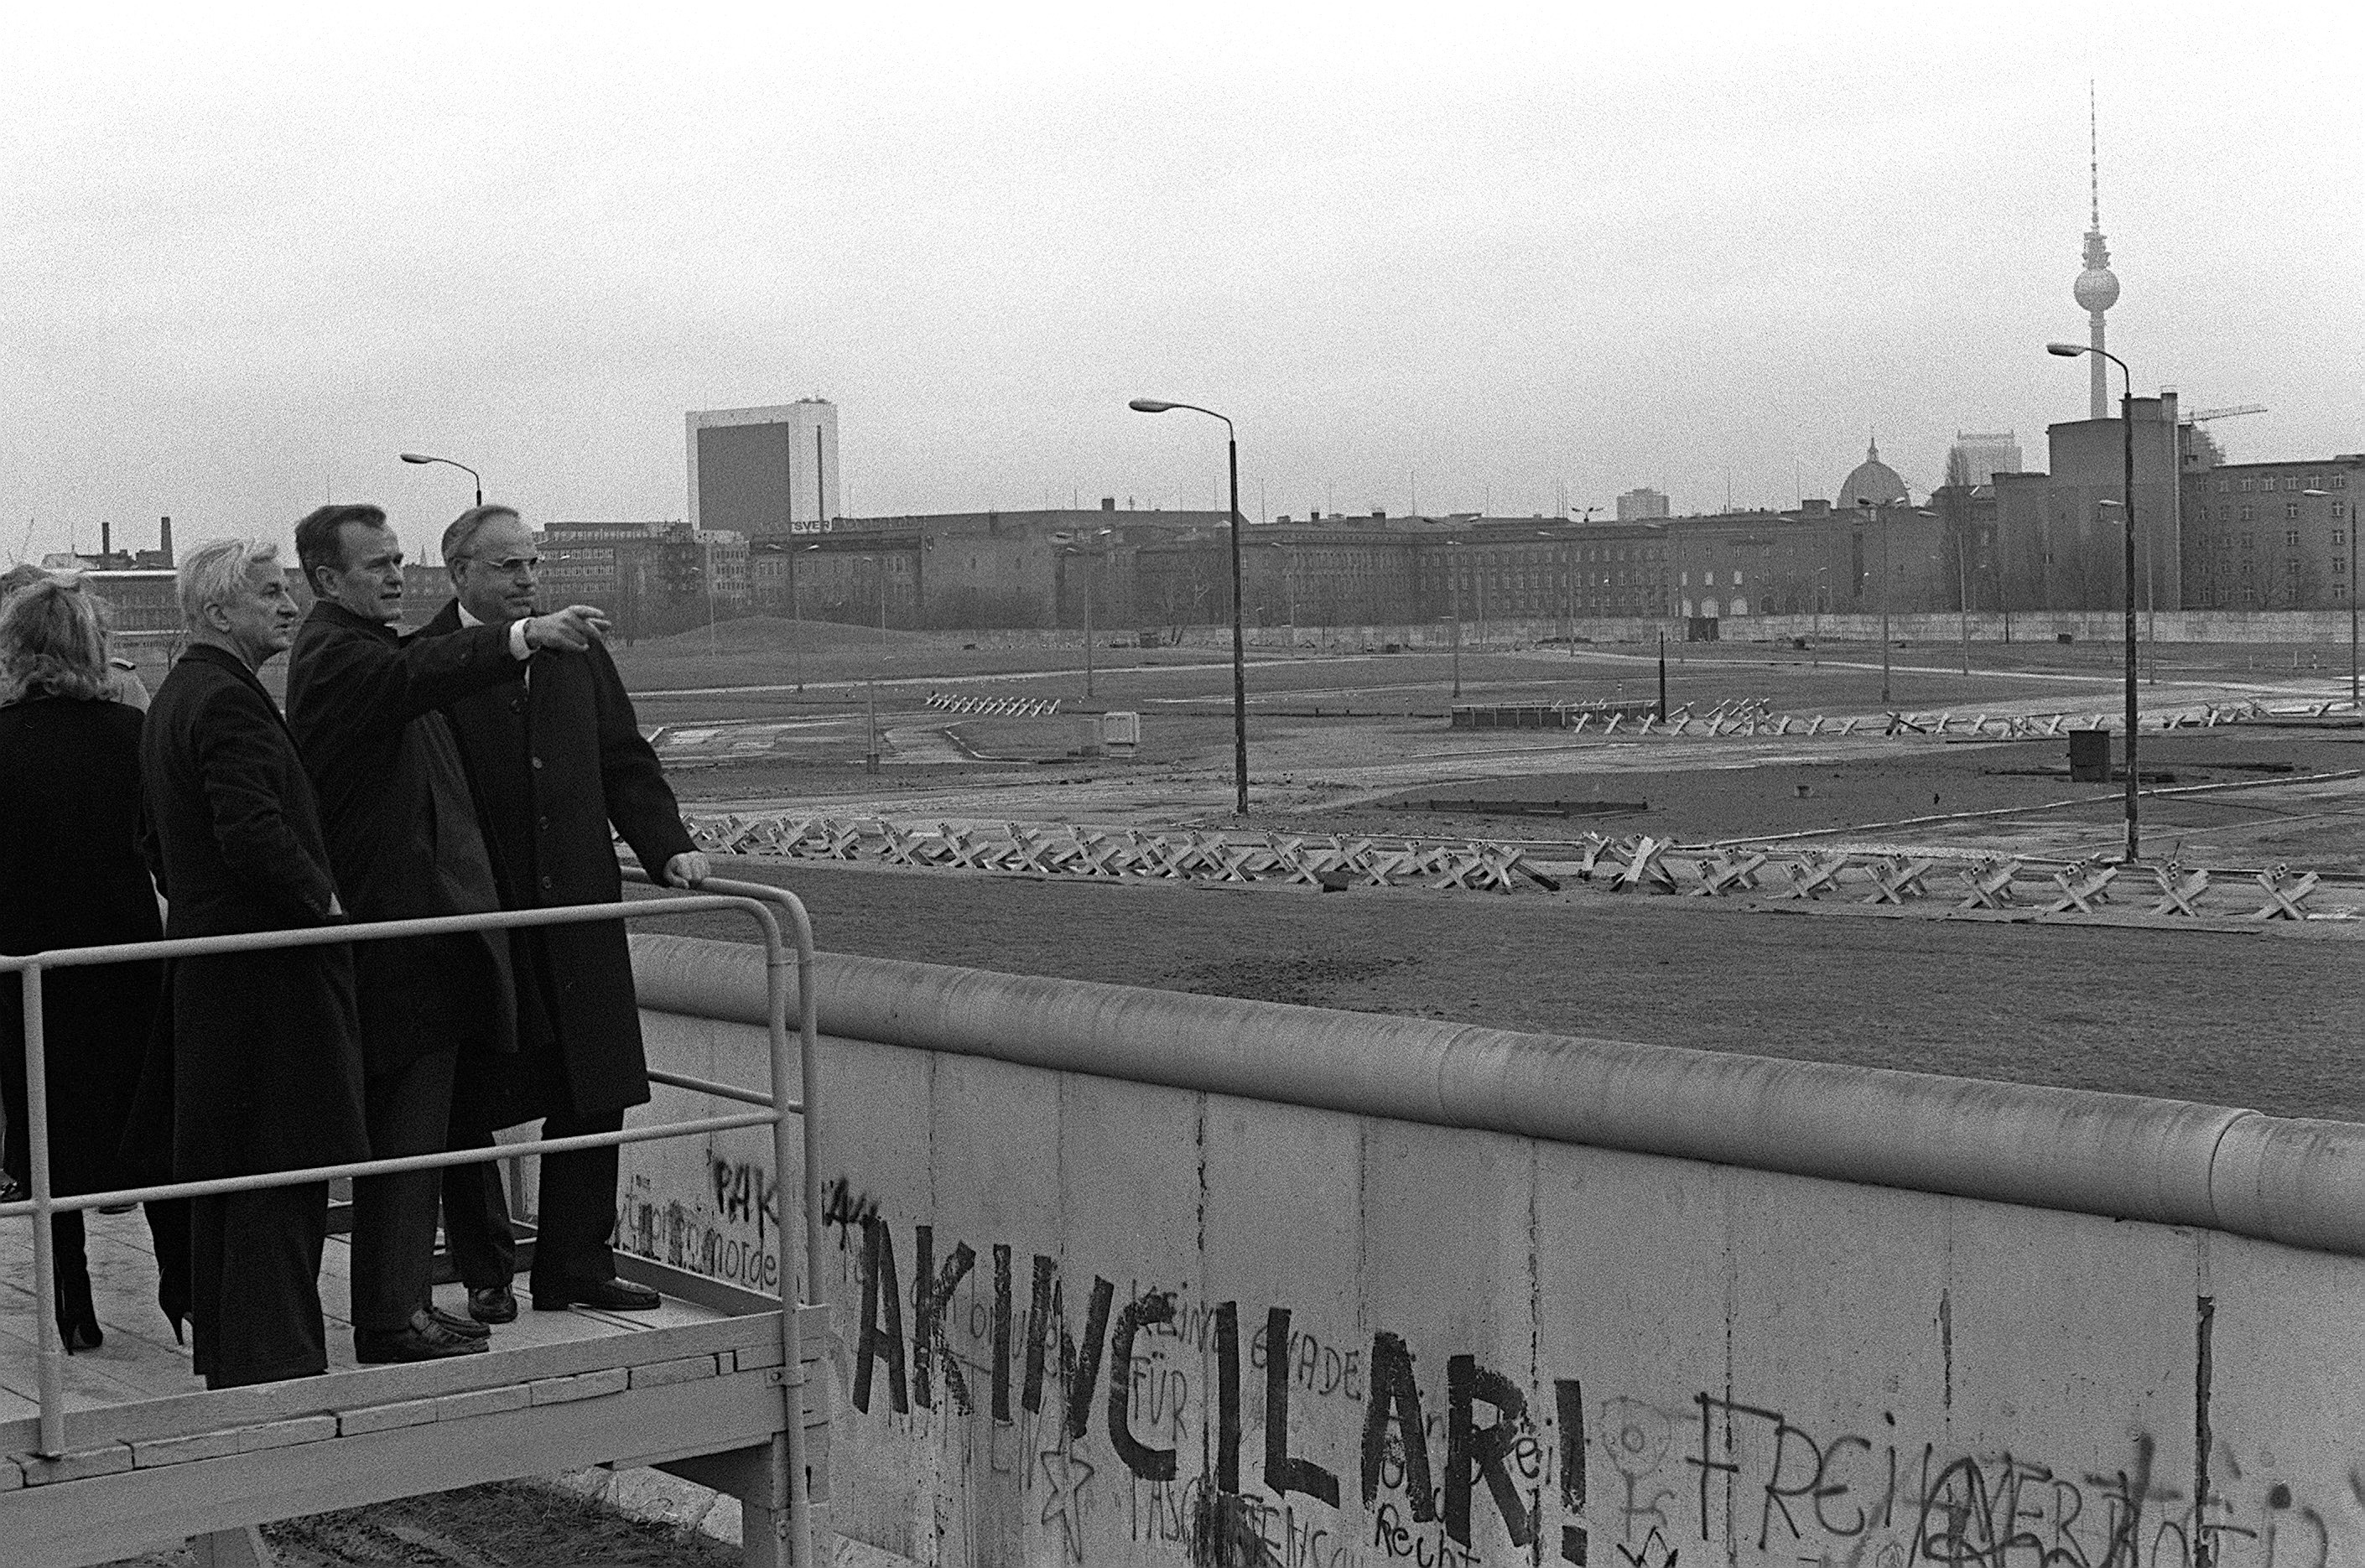 West German Chancellor Helmut Kohl and Berlin Mayor Richard von Weizsäcker show the Berlin Wall to U.S. Vice President George H.W. Bush on January 21, 1983. (National Archives)